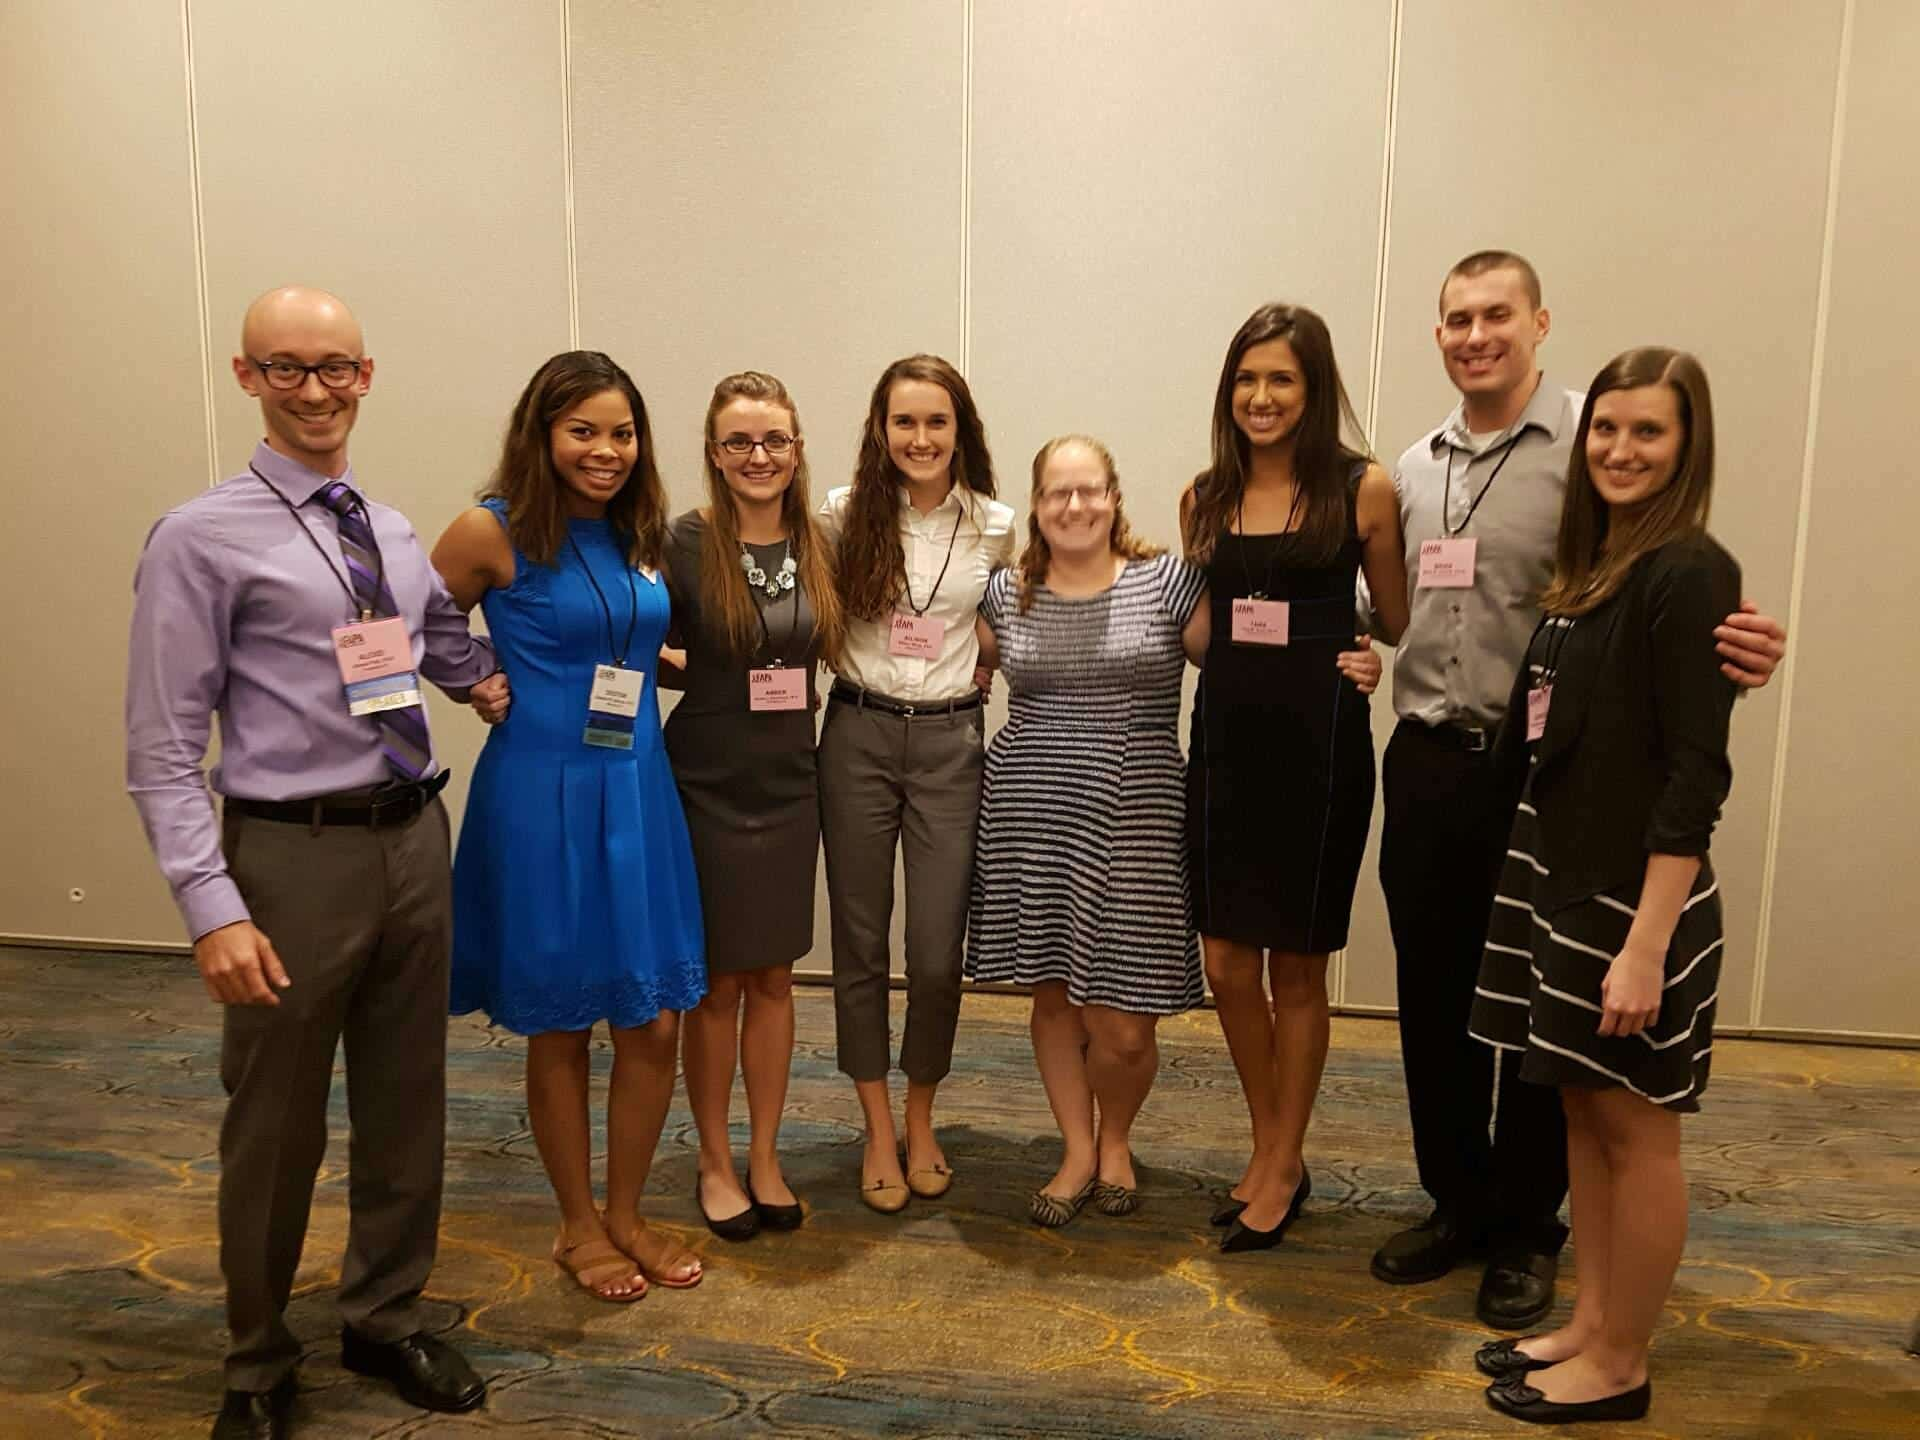 Ft. Lauderdale PASA Attends the Florida Association of Physician Assistants Summer Symposium